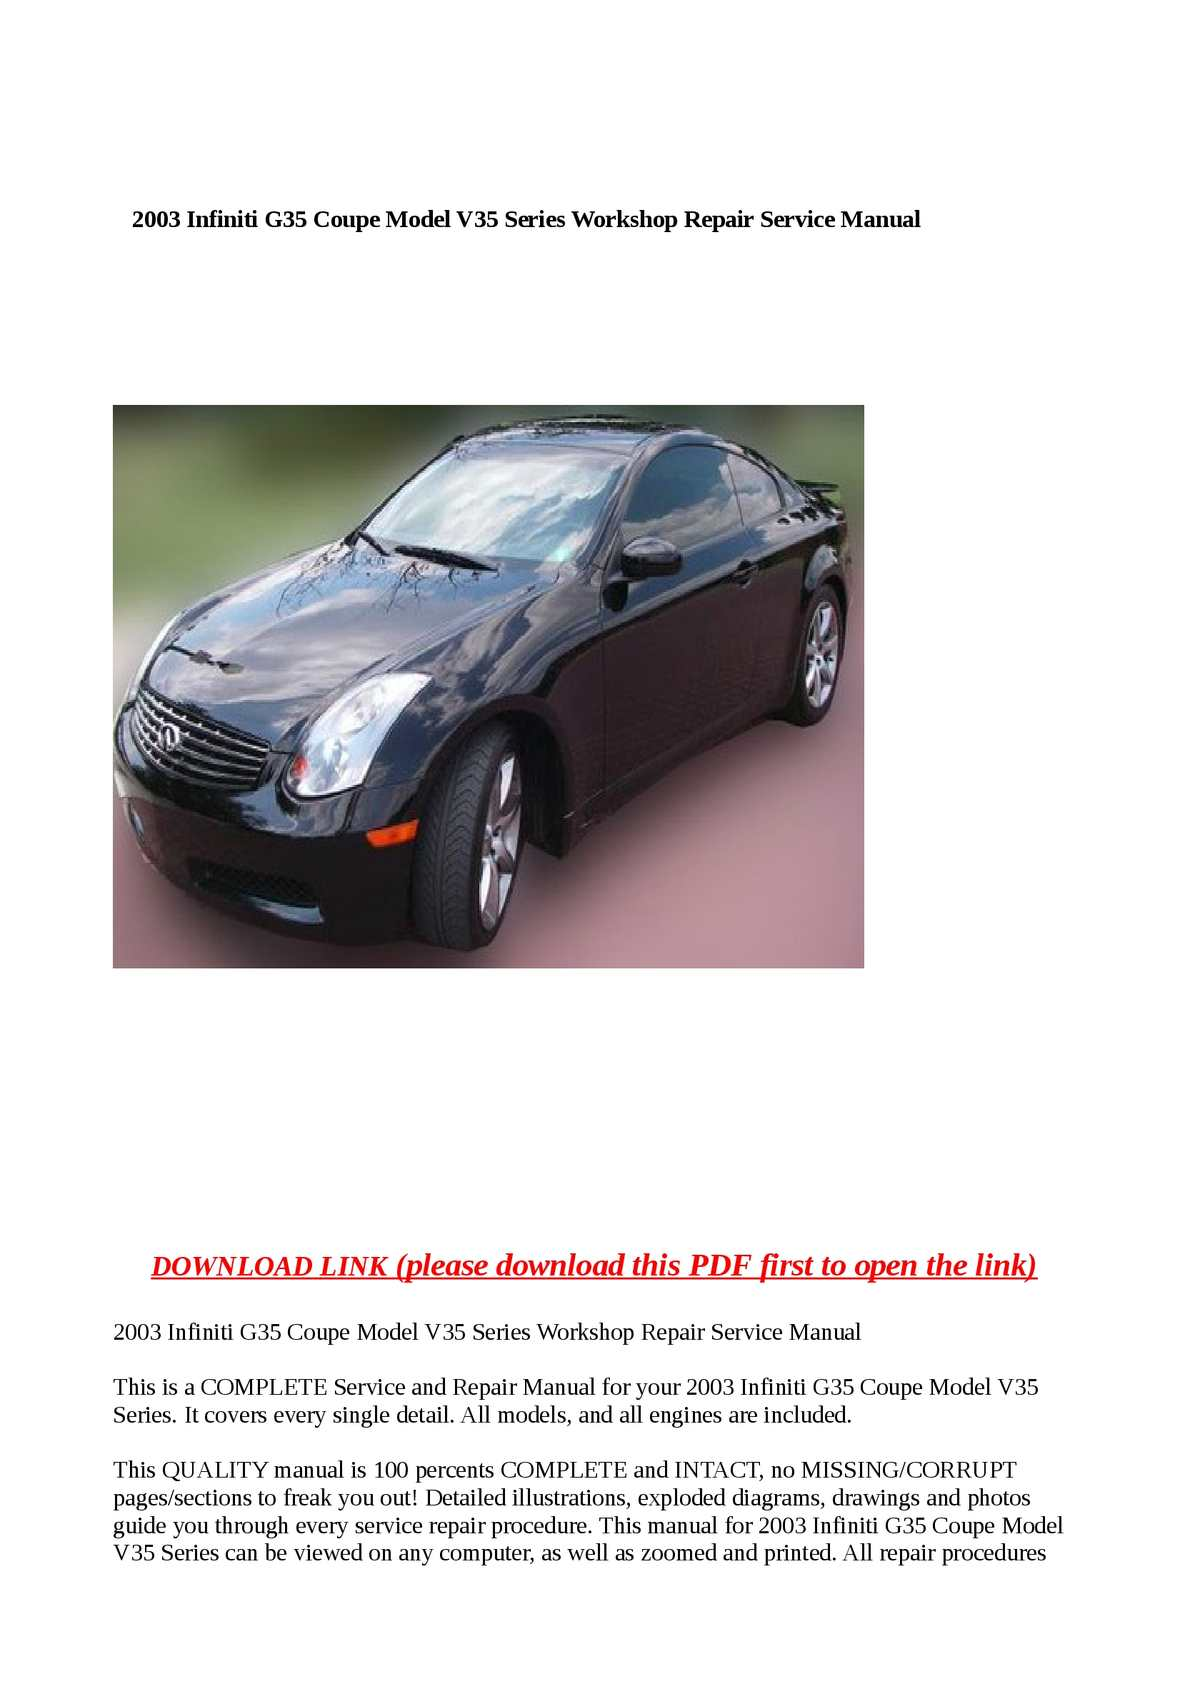 Calaméo - 2003 Infiniti G35 Coupe Model V35 Series Workshop Repair Service  Manual